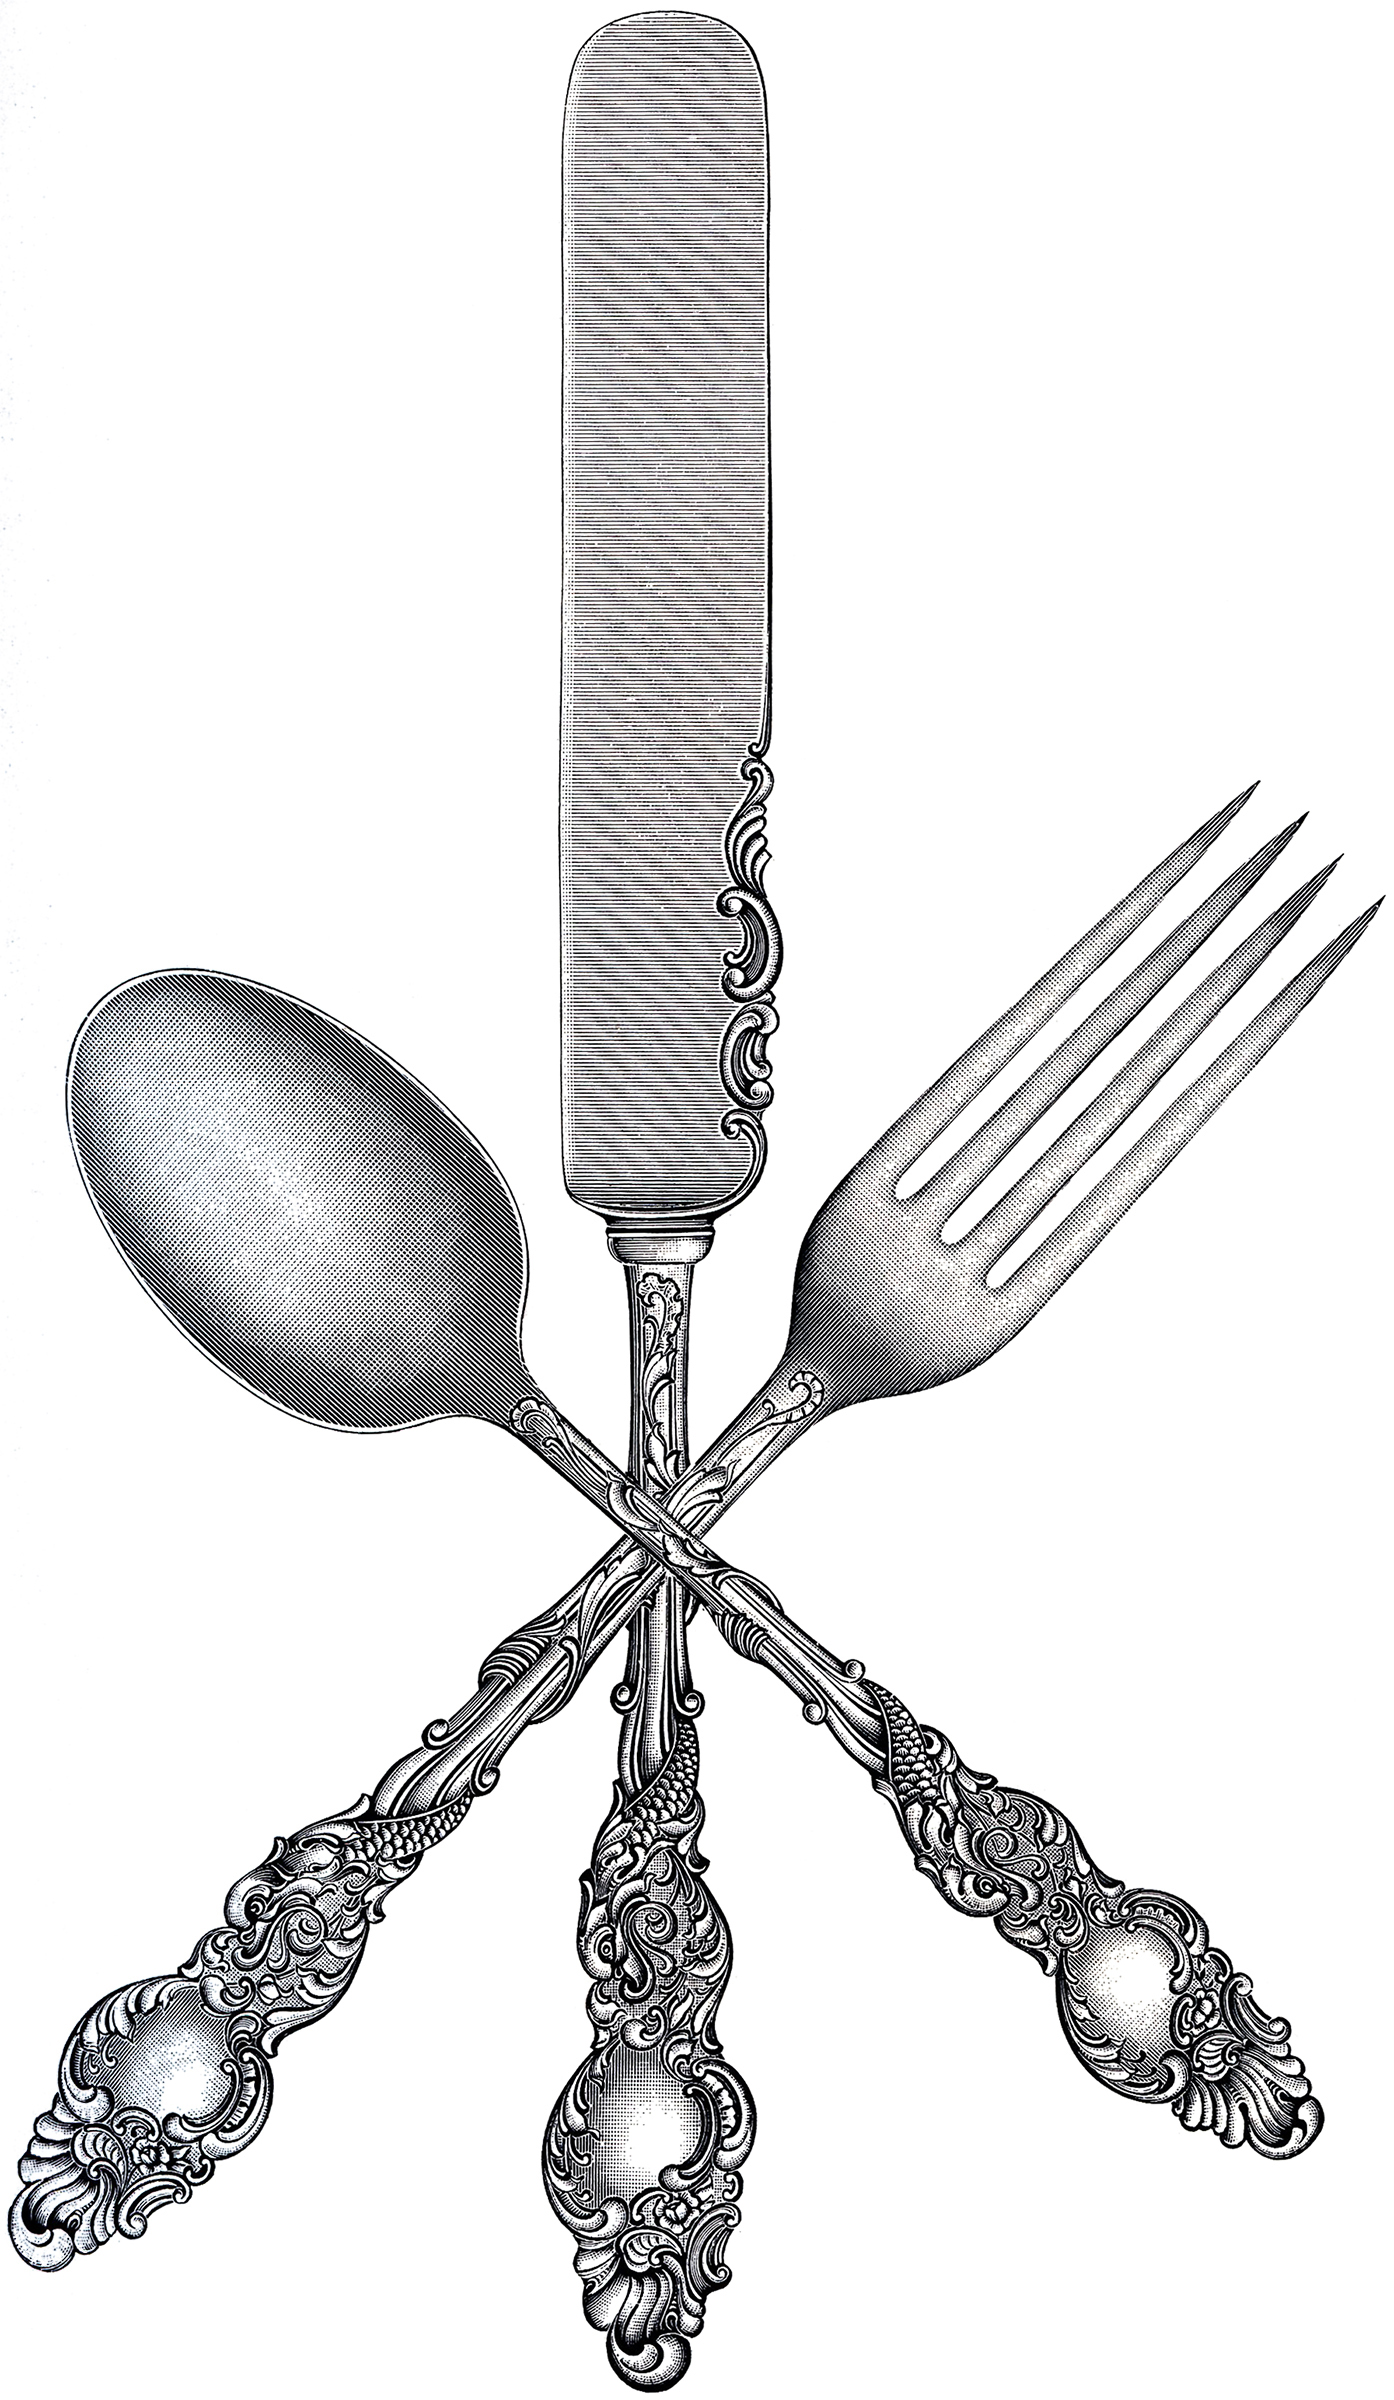 Free Fork Spoon Knife Clip Art - The Graphics Fairy